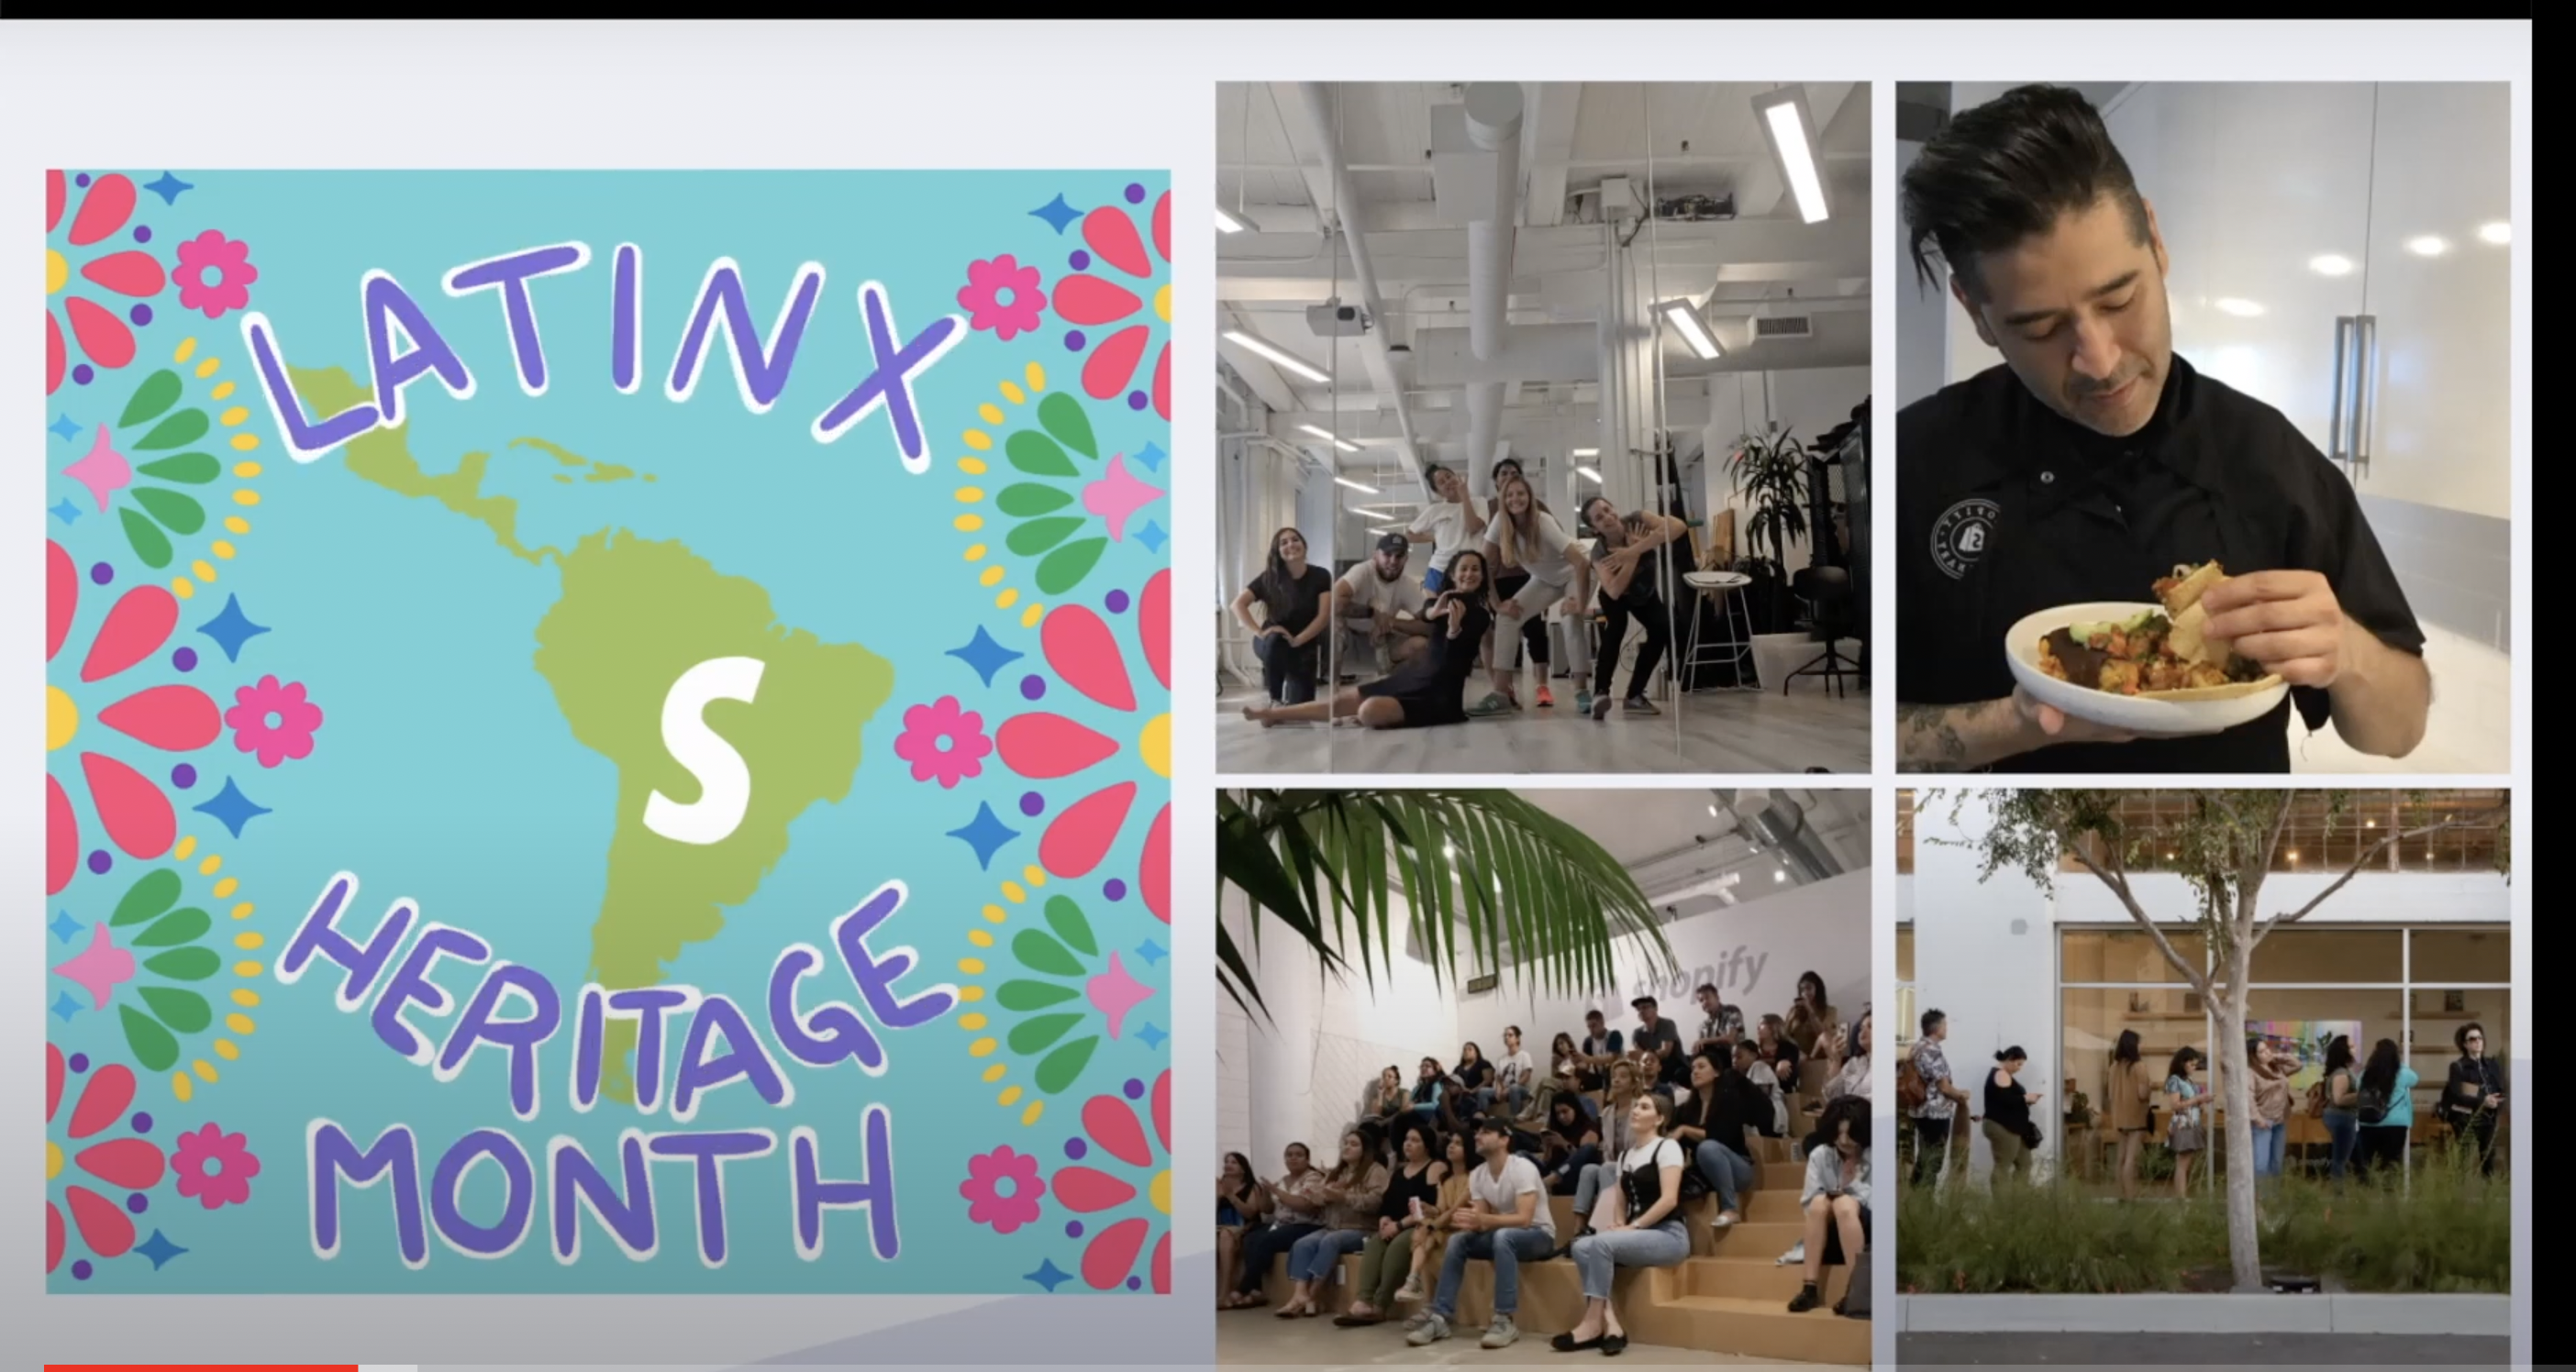 How Shopify Empowers Globally Distributed Employee Communities